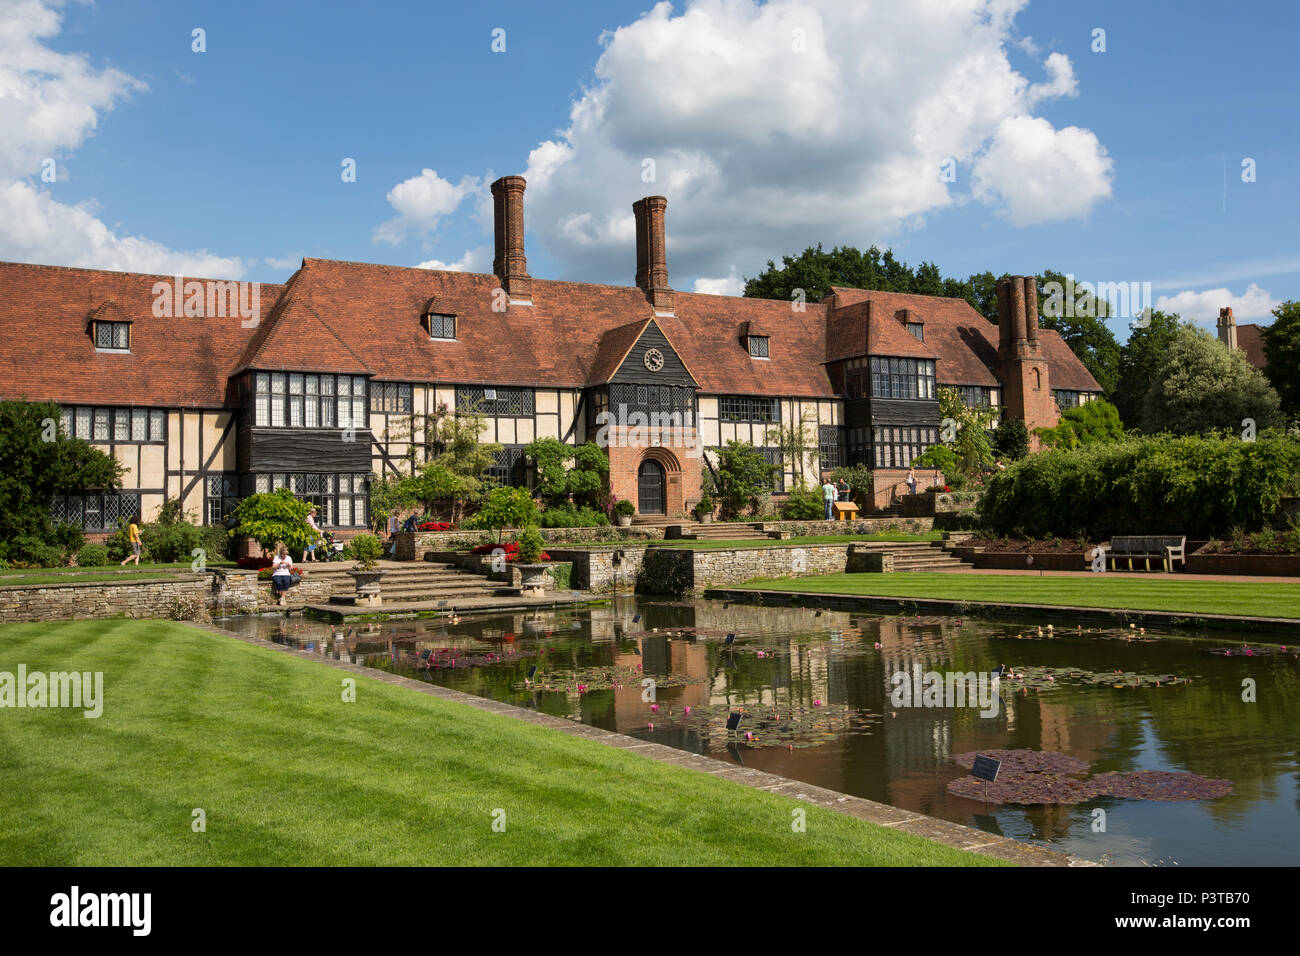 RHS Wisley Gardens, planted borders, luscious rose gardens and a state-of-the-art Glasshouse, horticultural gardens in Surrey, England, U - Stock Image